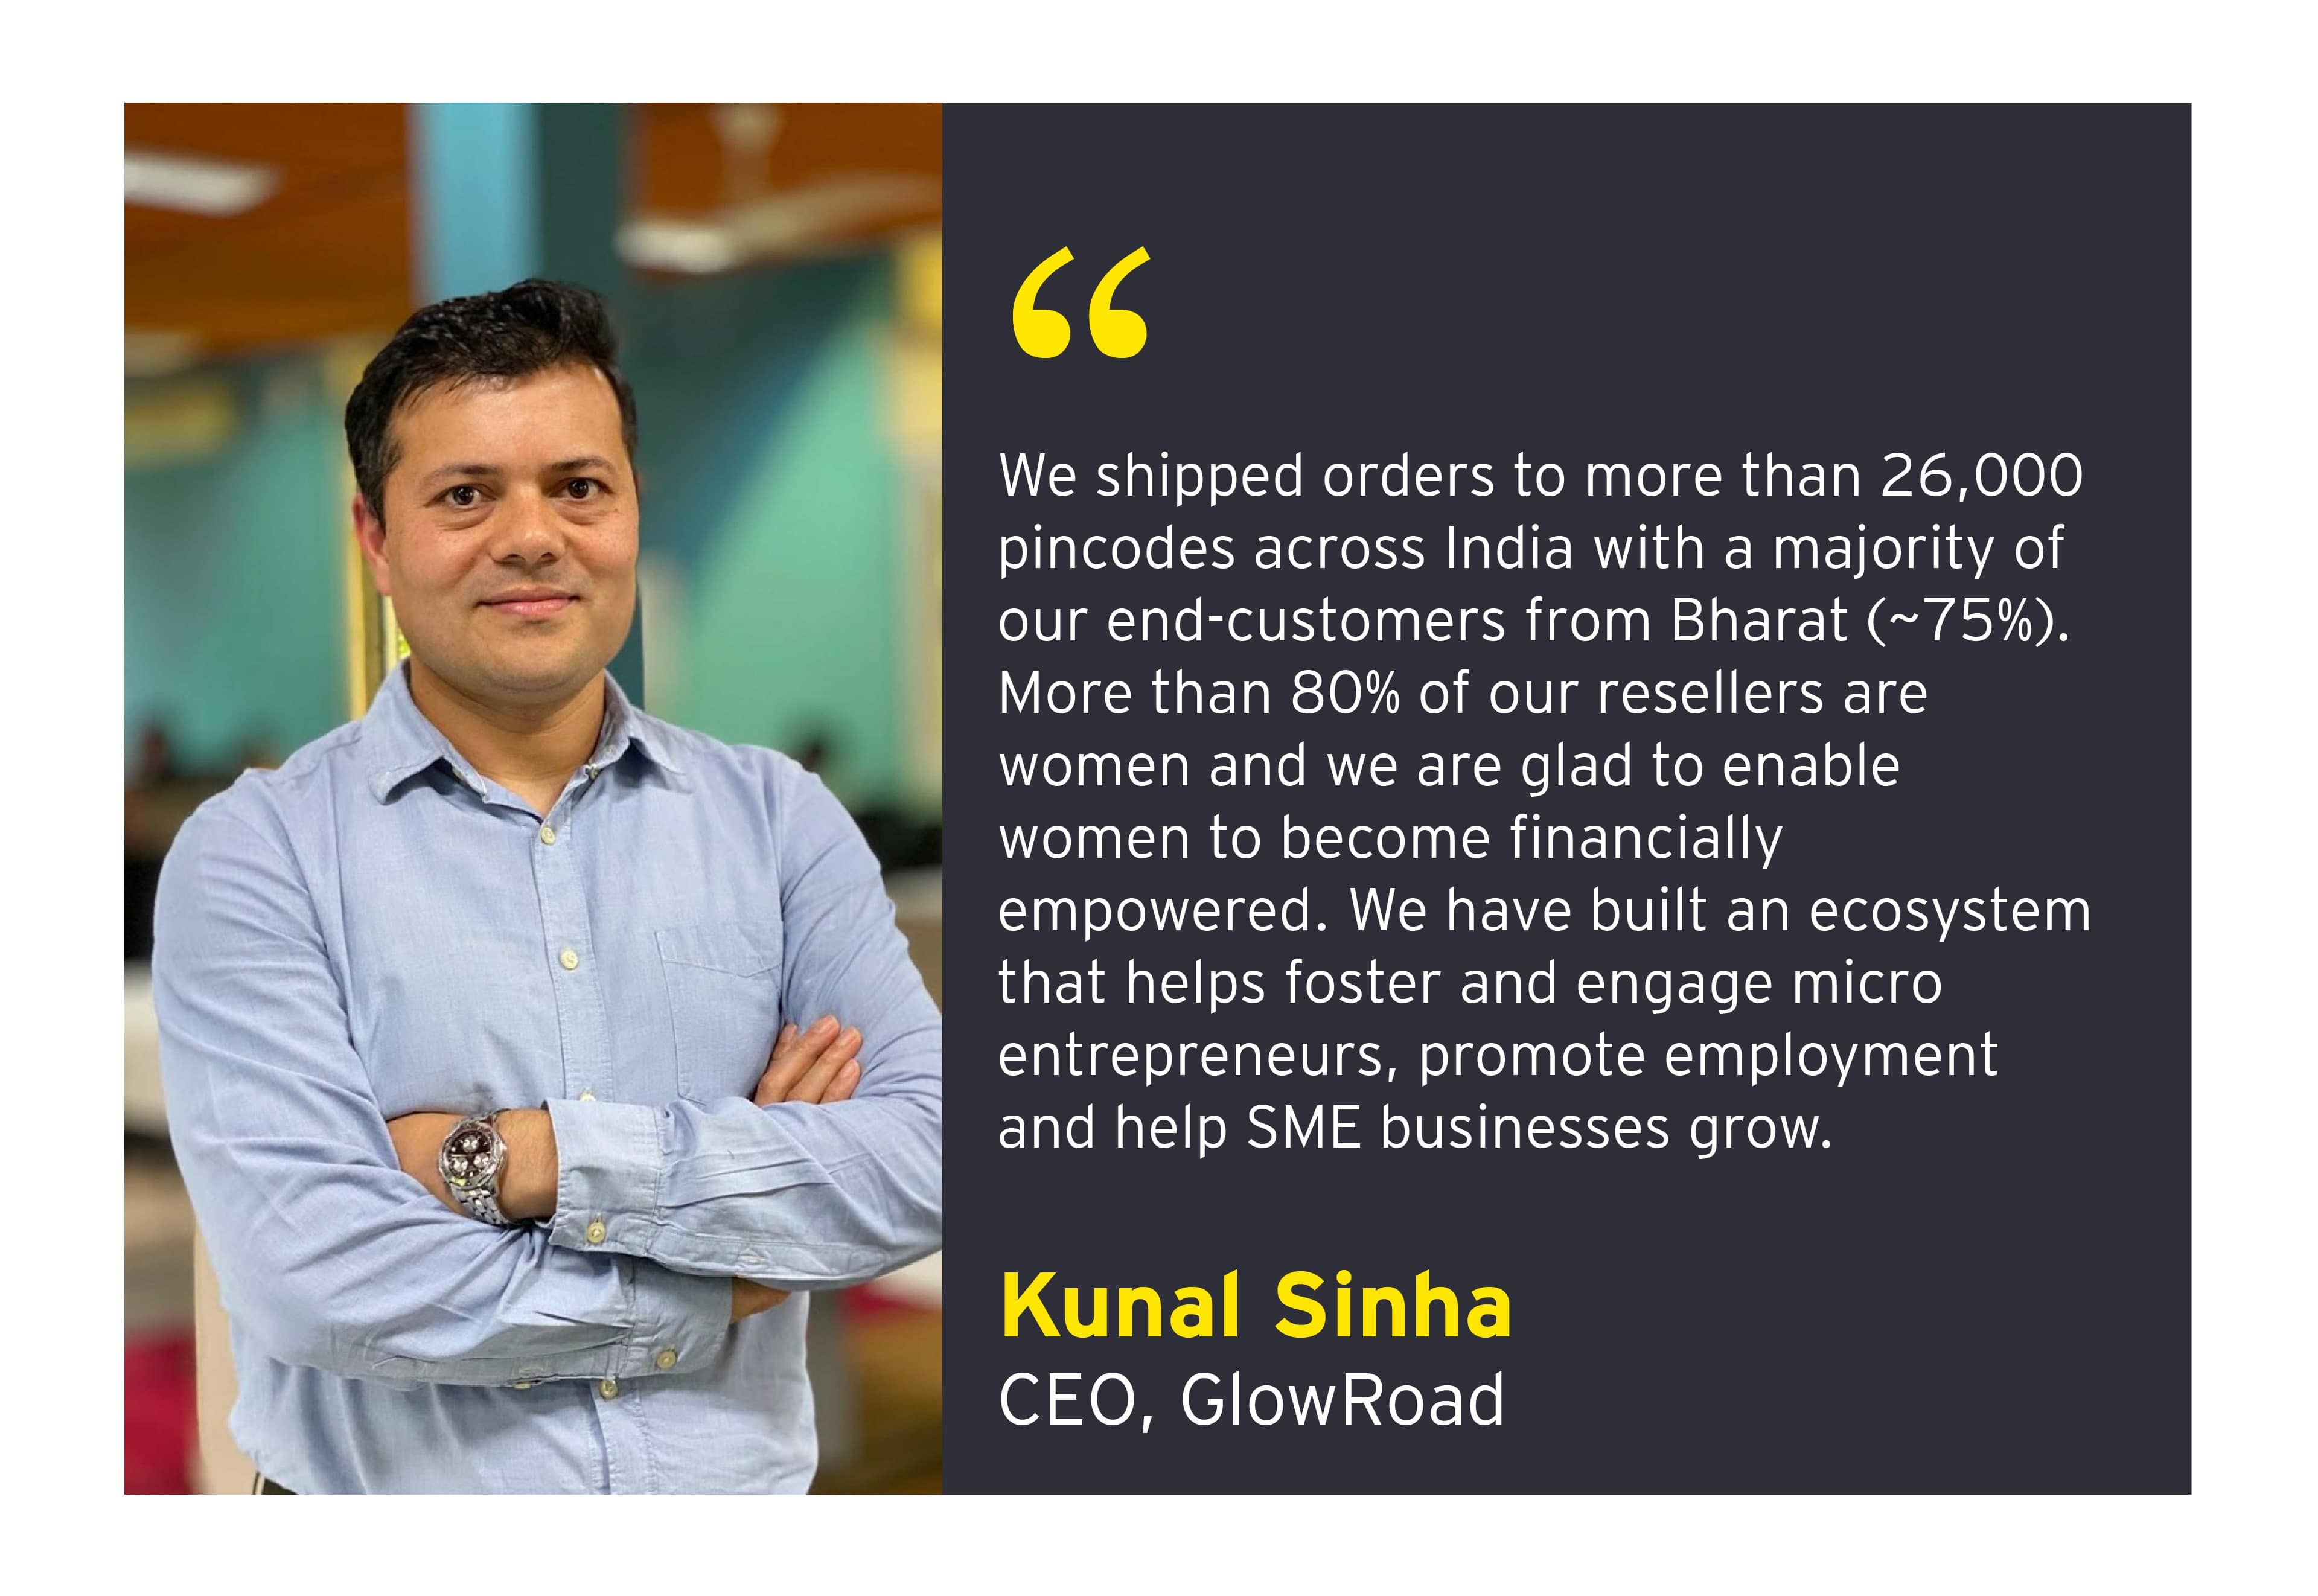 Kunal Sinha quote